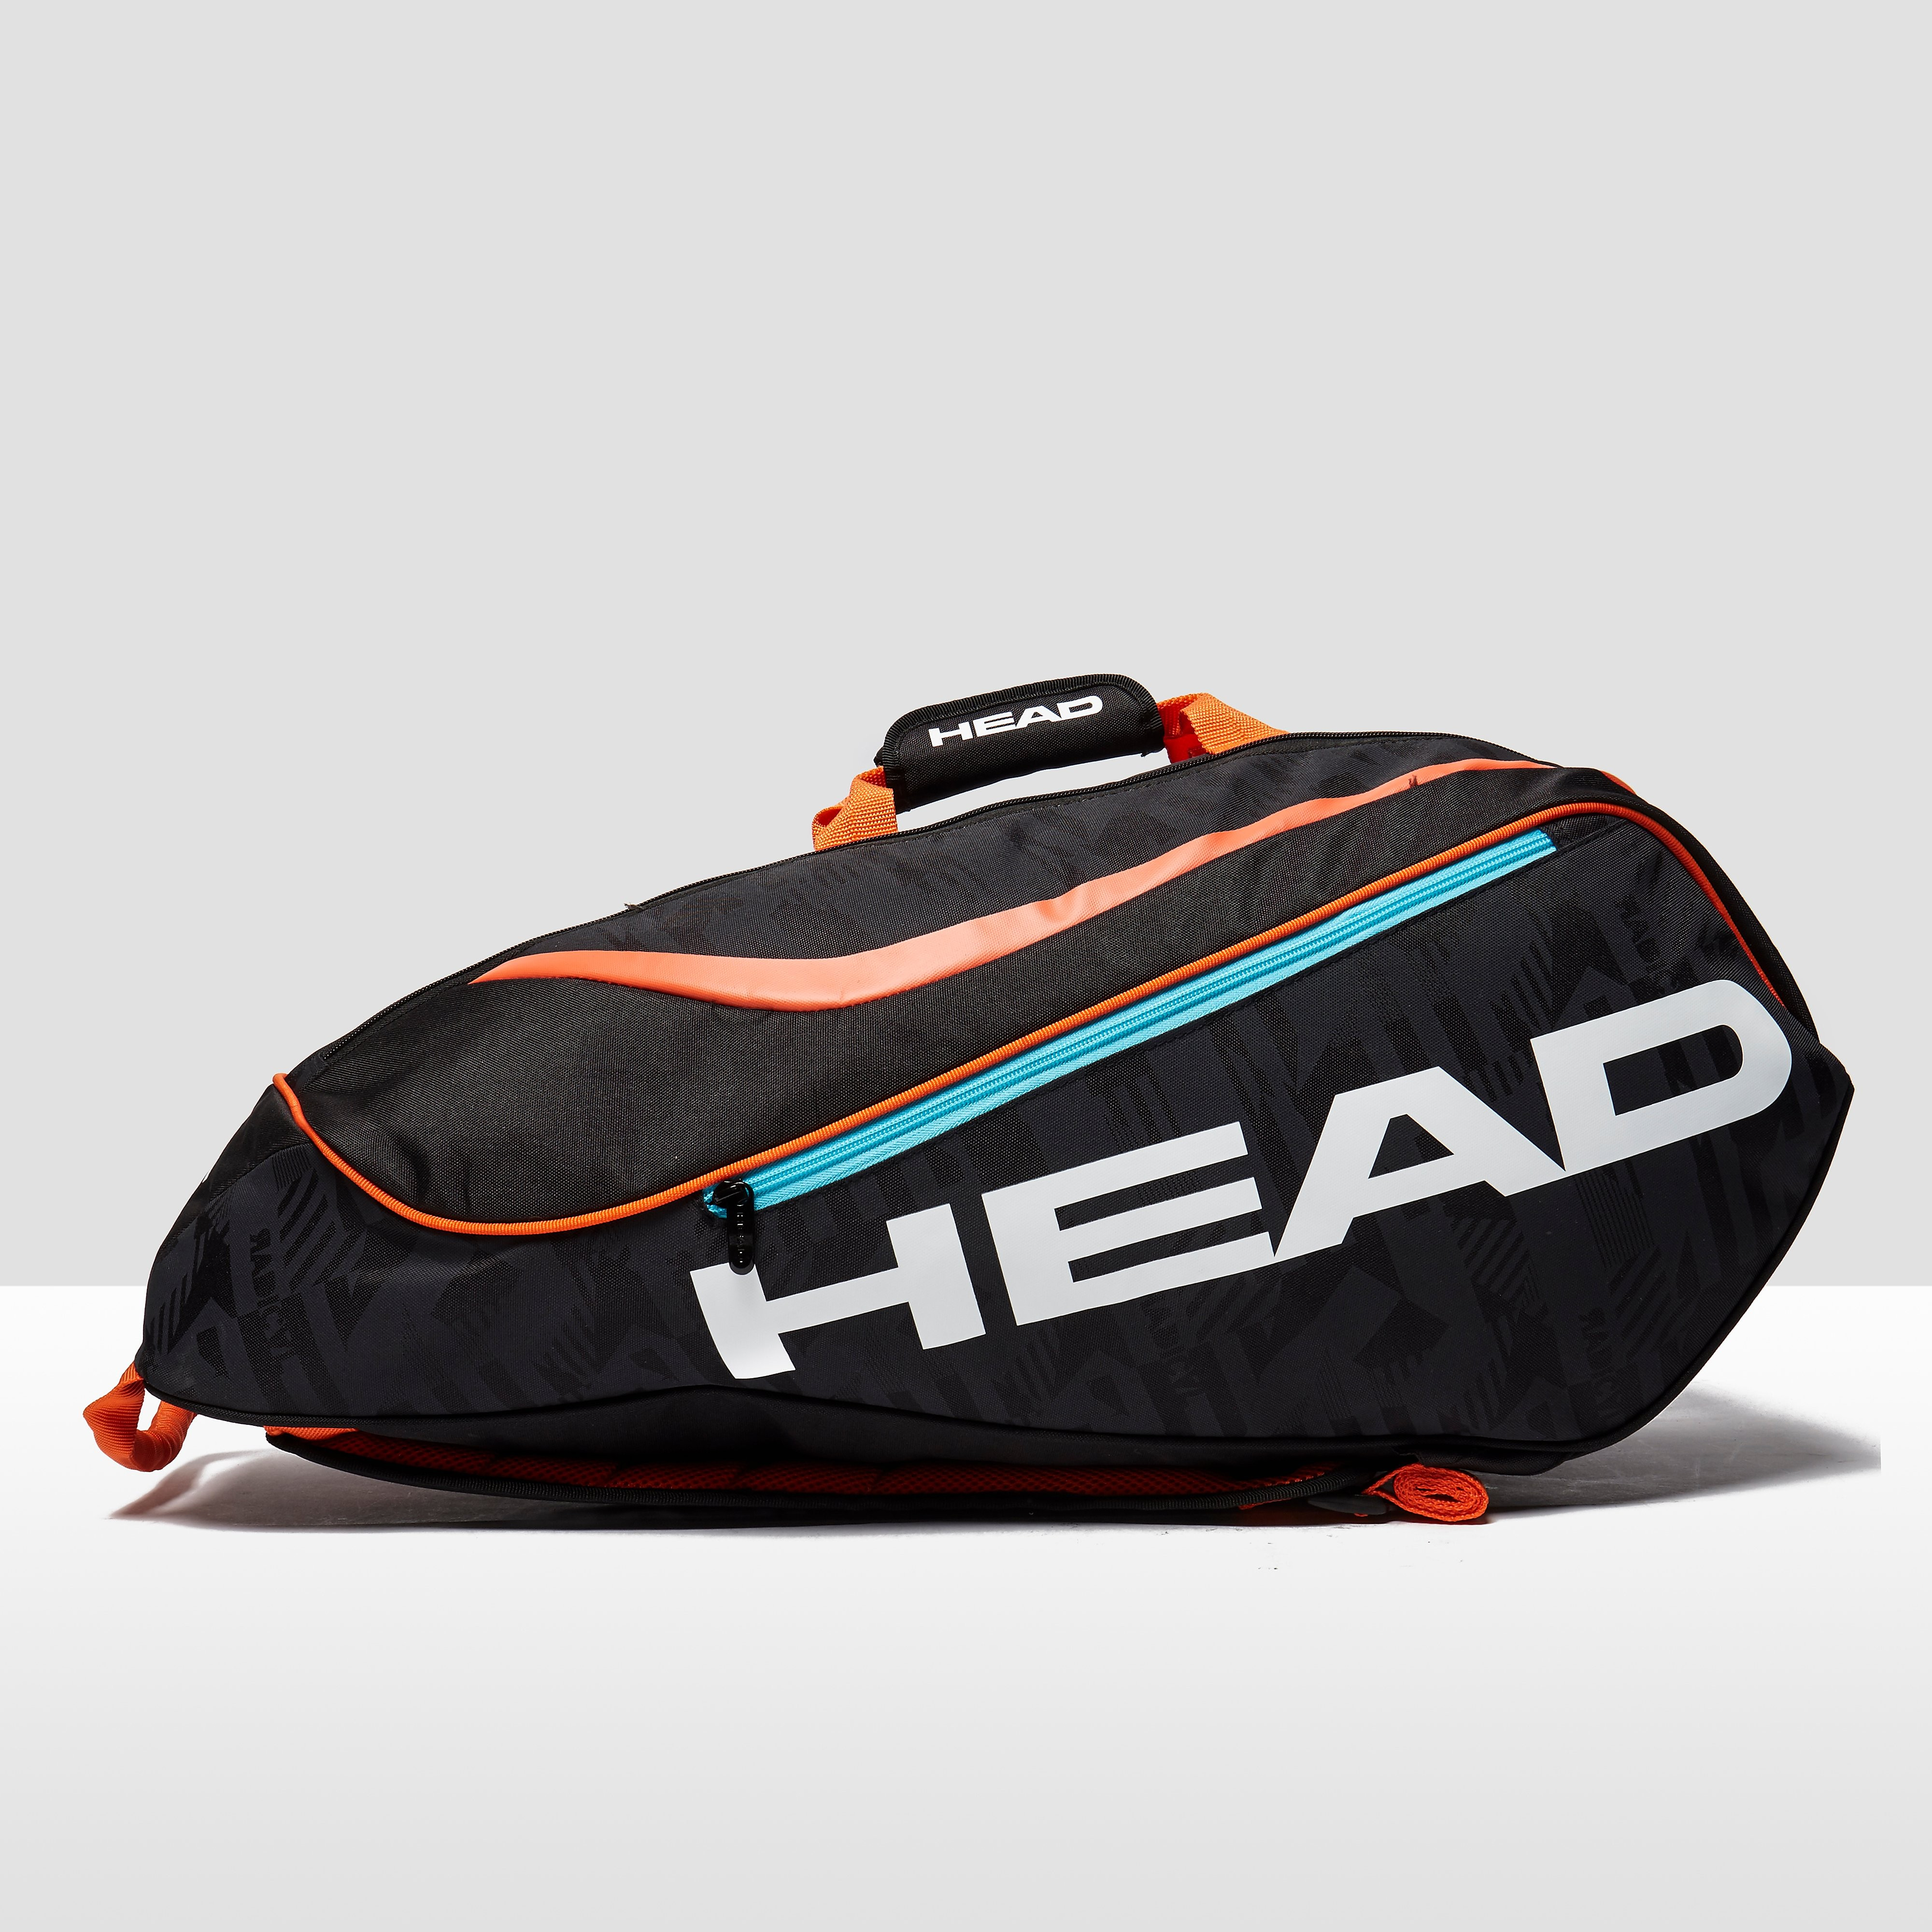 Head Junior Rebel Combi Racketbag